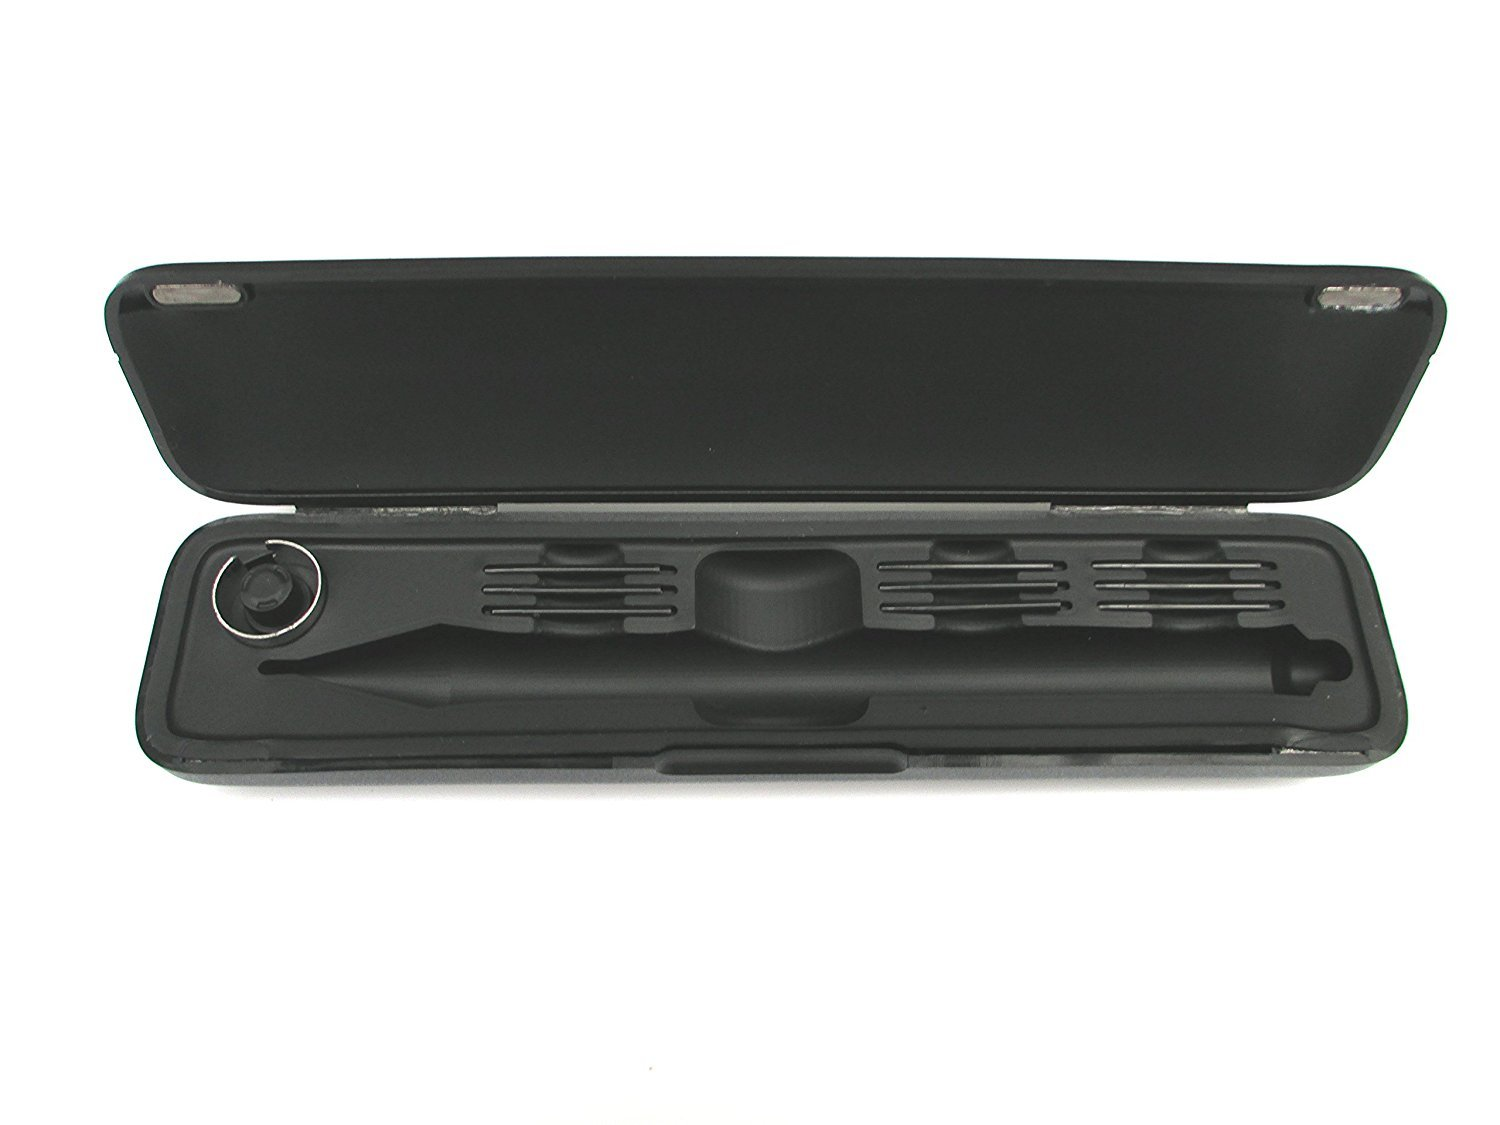 JRSMART Premium Pen Case Fit Wacom CTL-471 671 CTH-480 680 PTH-451 651 650 Pens by JR SMART